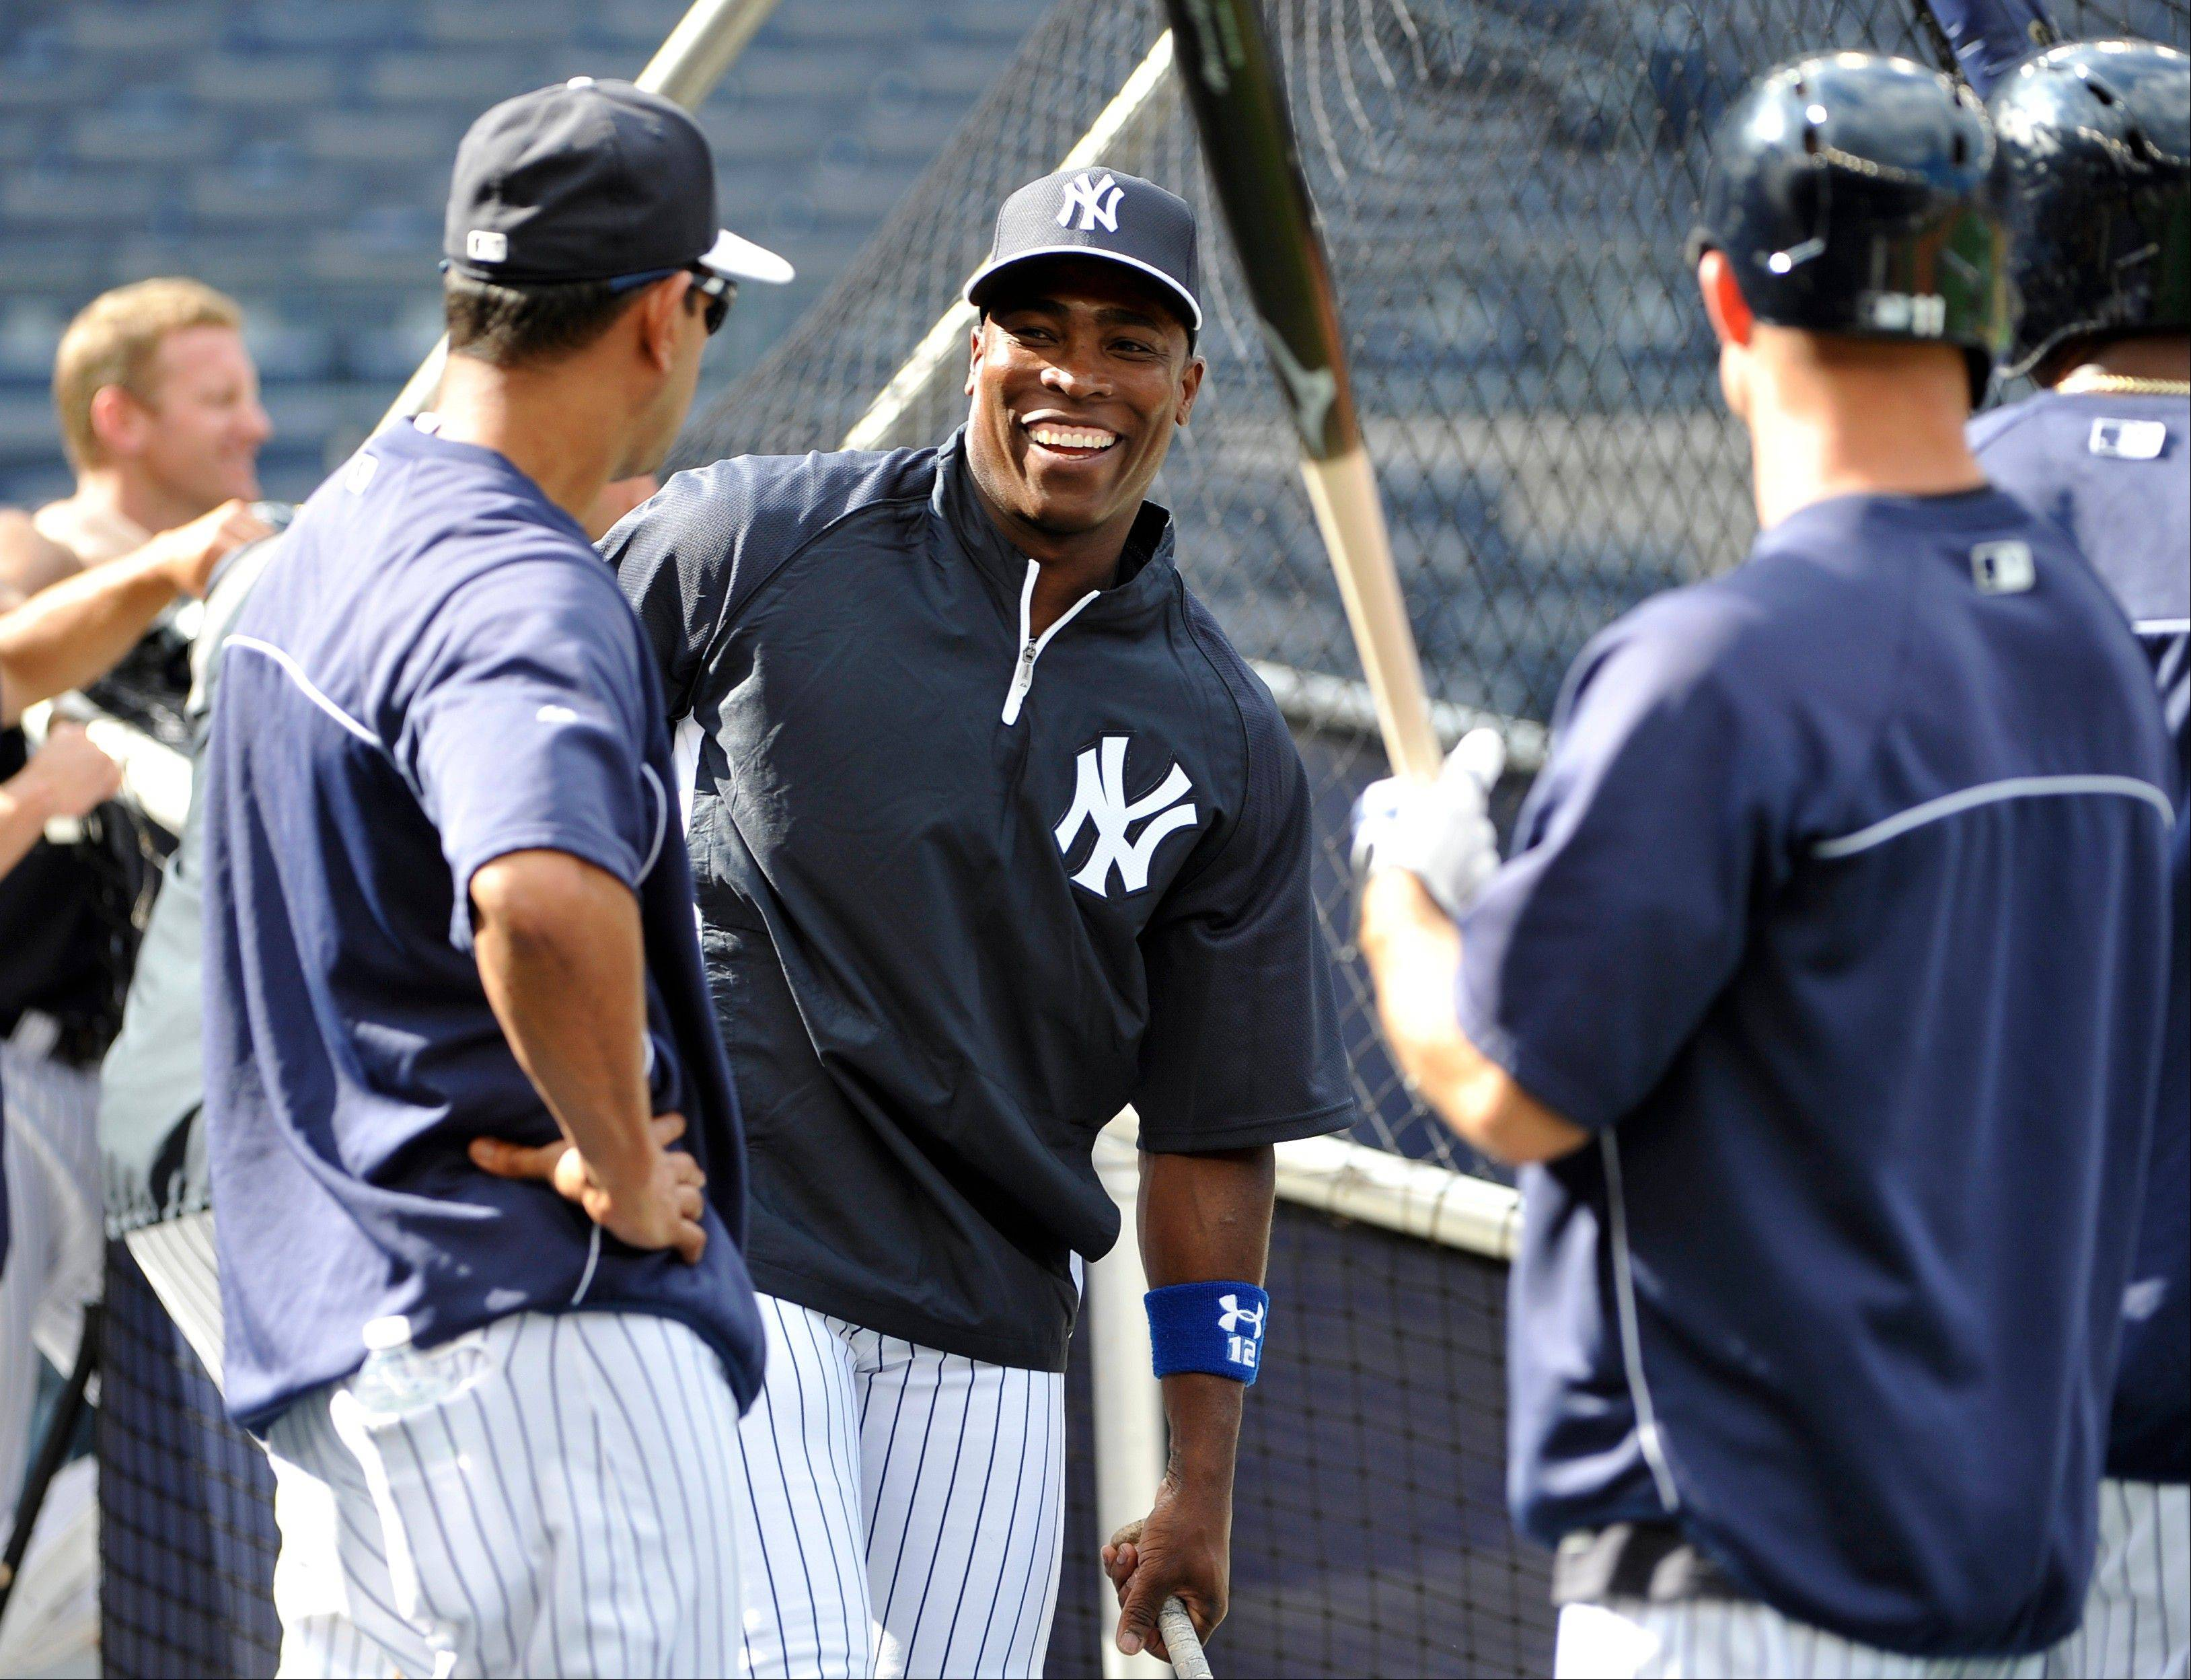 Alfonso Soriano, center, is greeted by New York Yankees teammates during batting practice before Friday's game against the Tampa Bay Rays at Yankee Stadium.